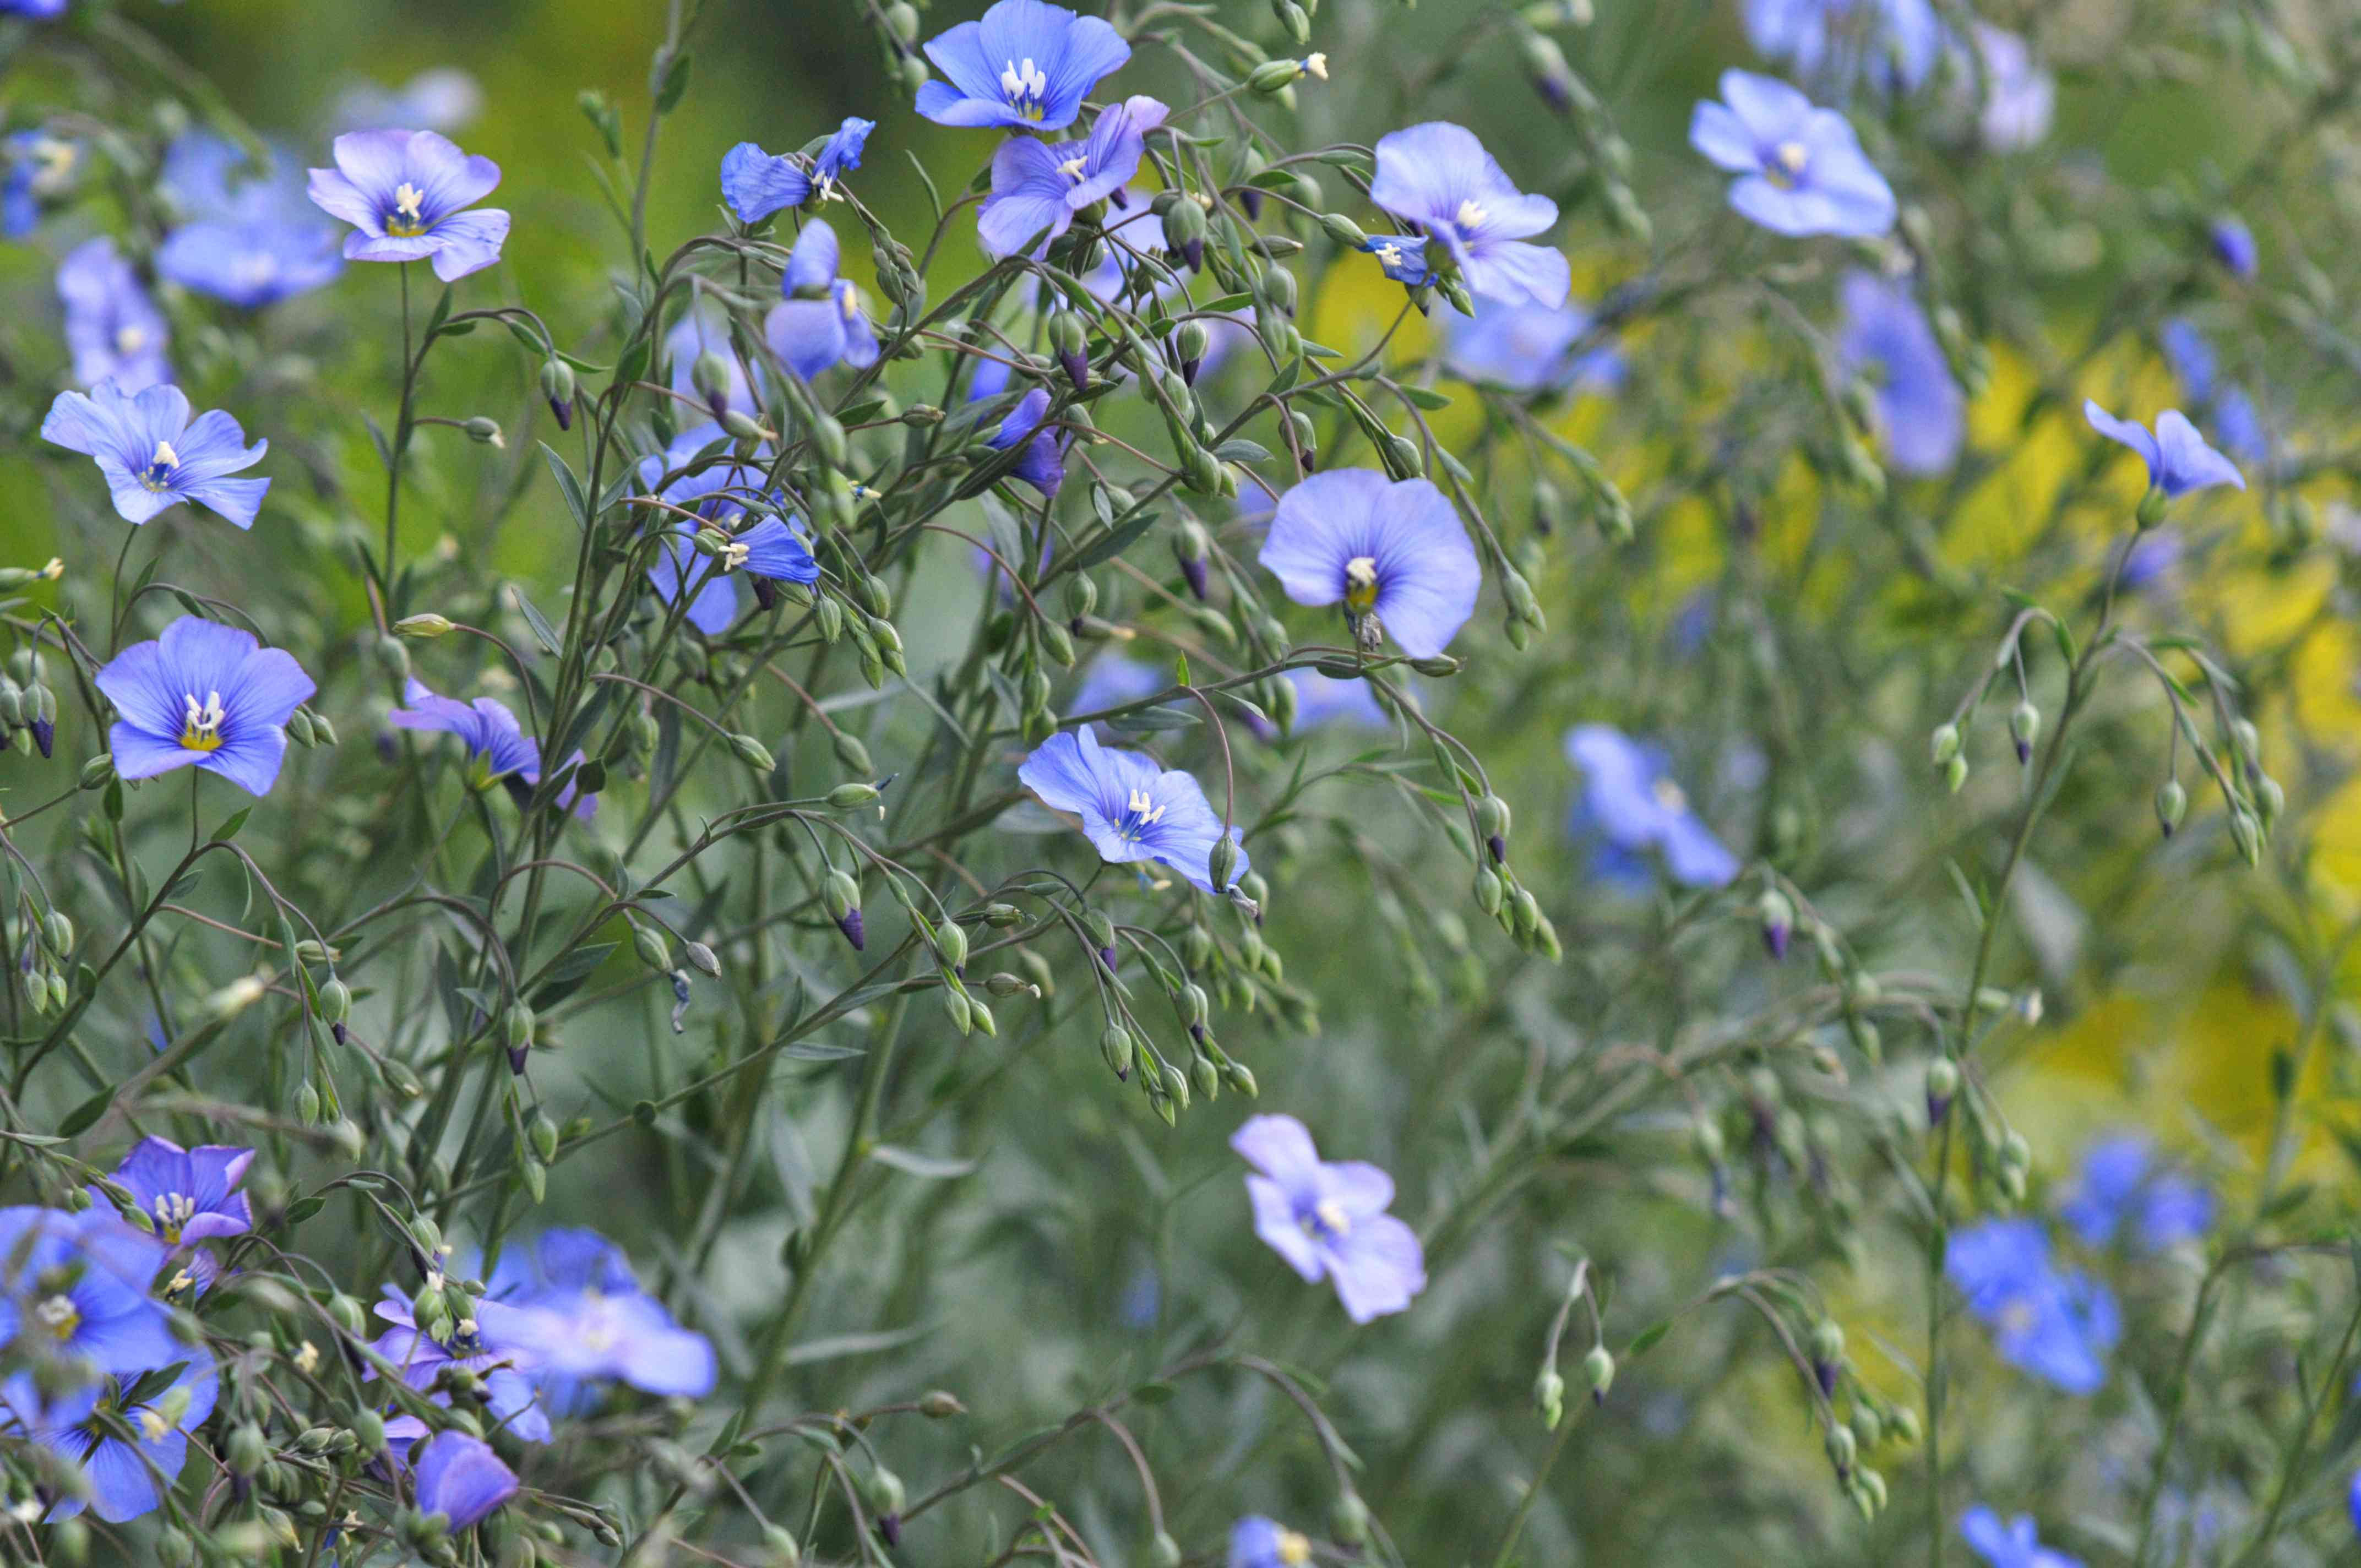 Flax plant stems with blue flowers and buds